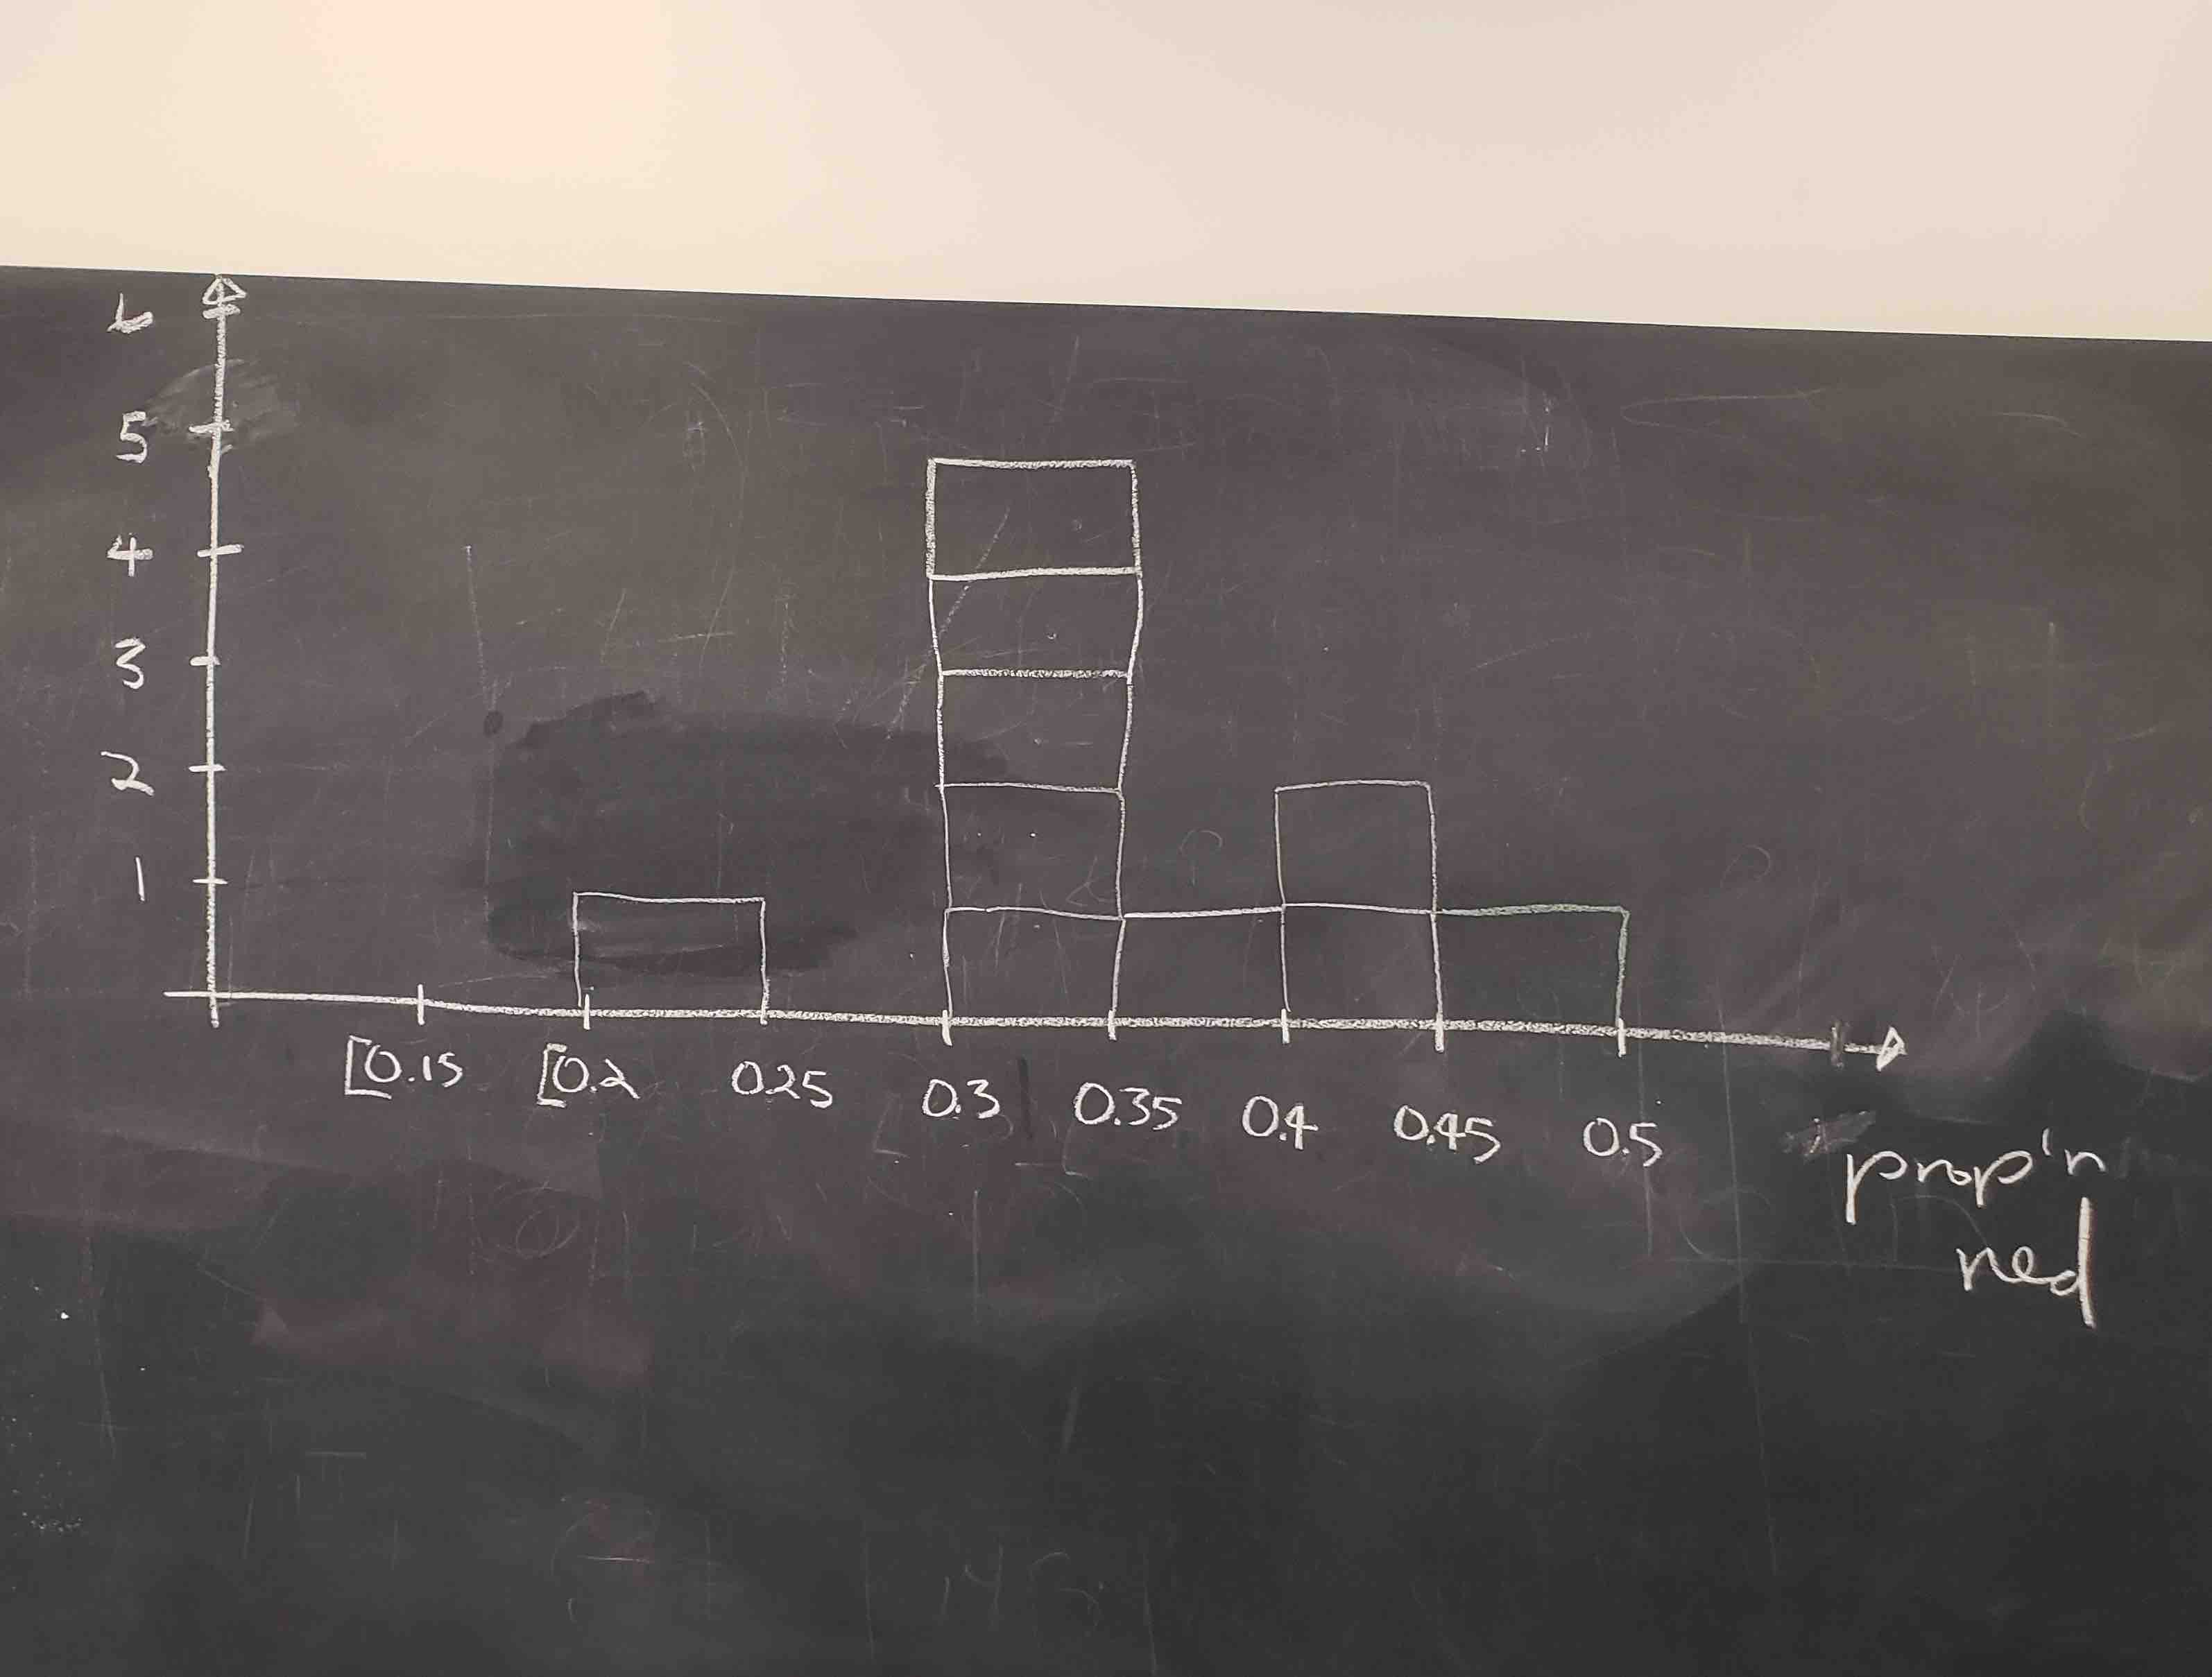 Step 3: Histogram of 10 values of $\widehat{p}$